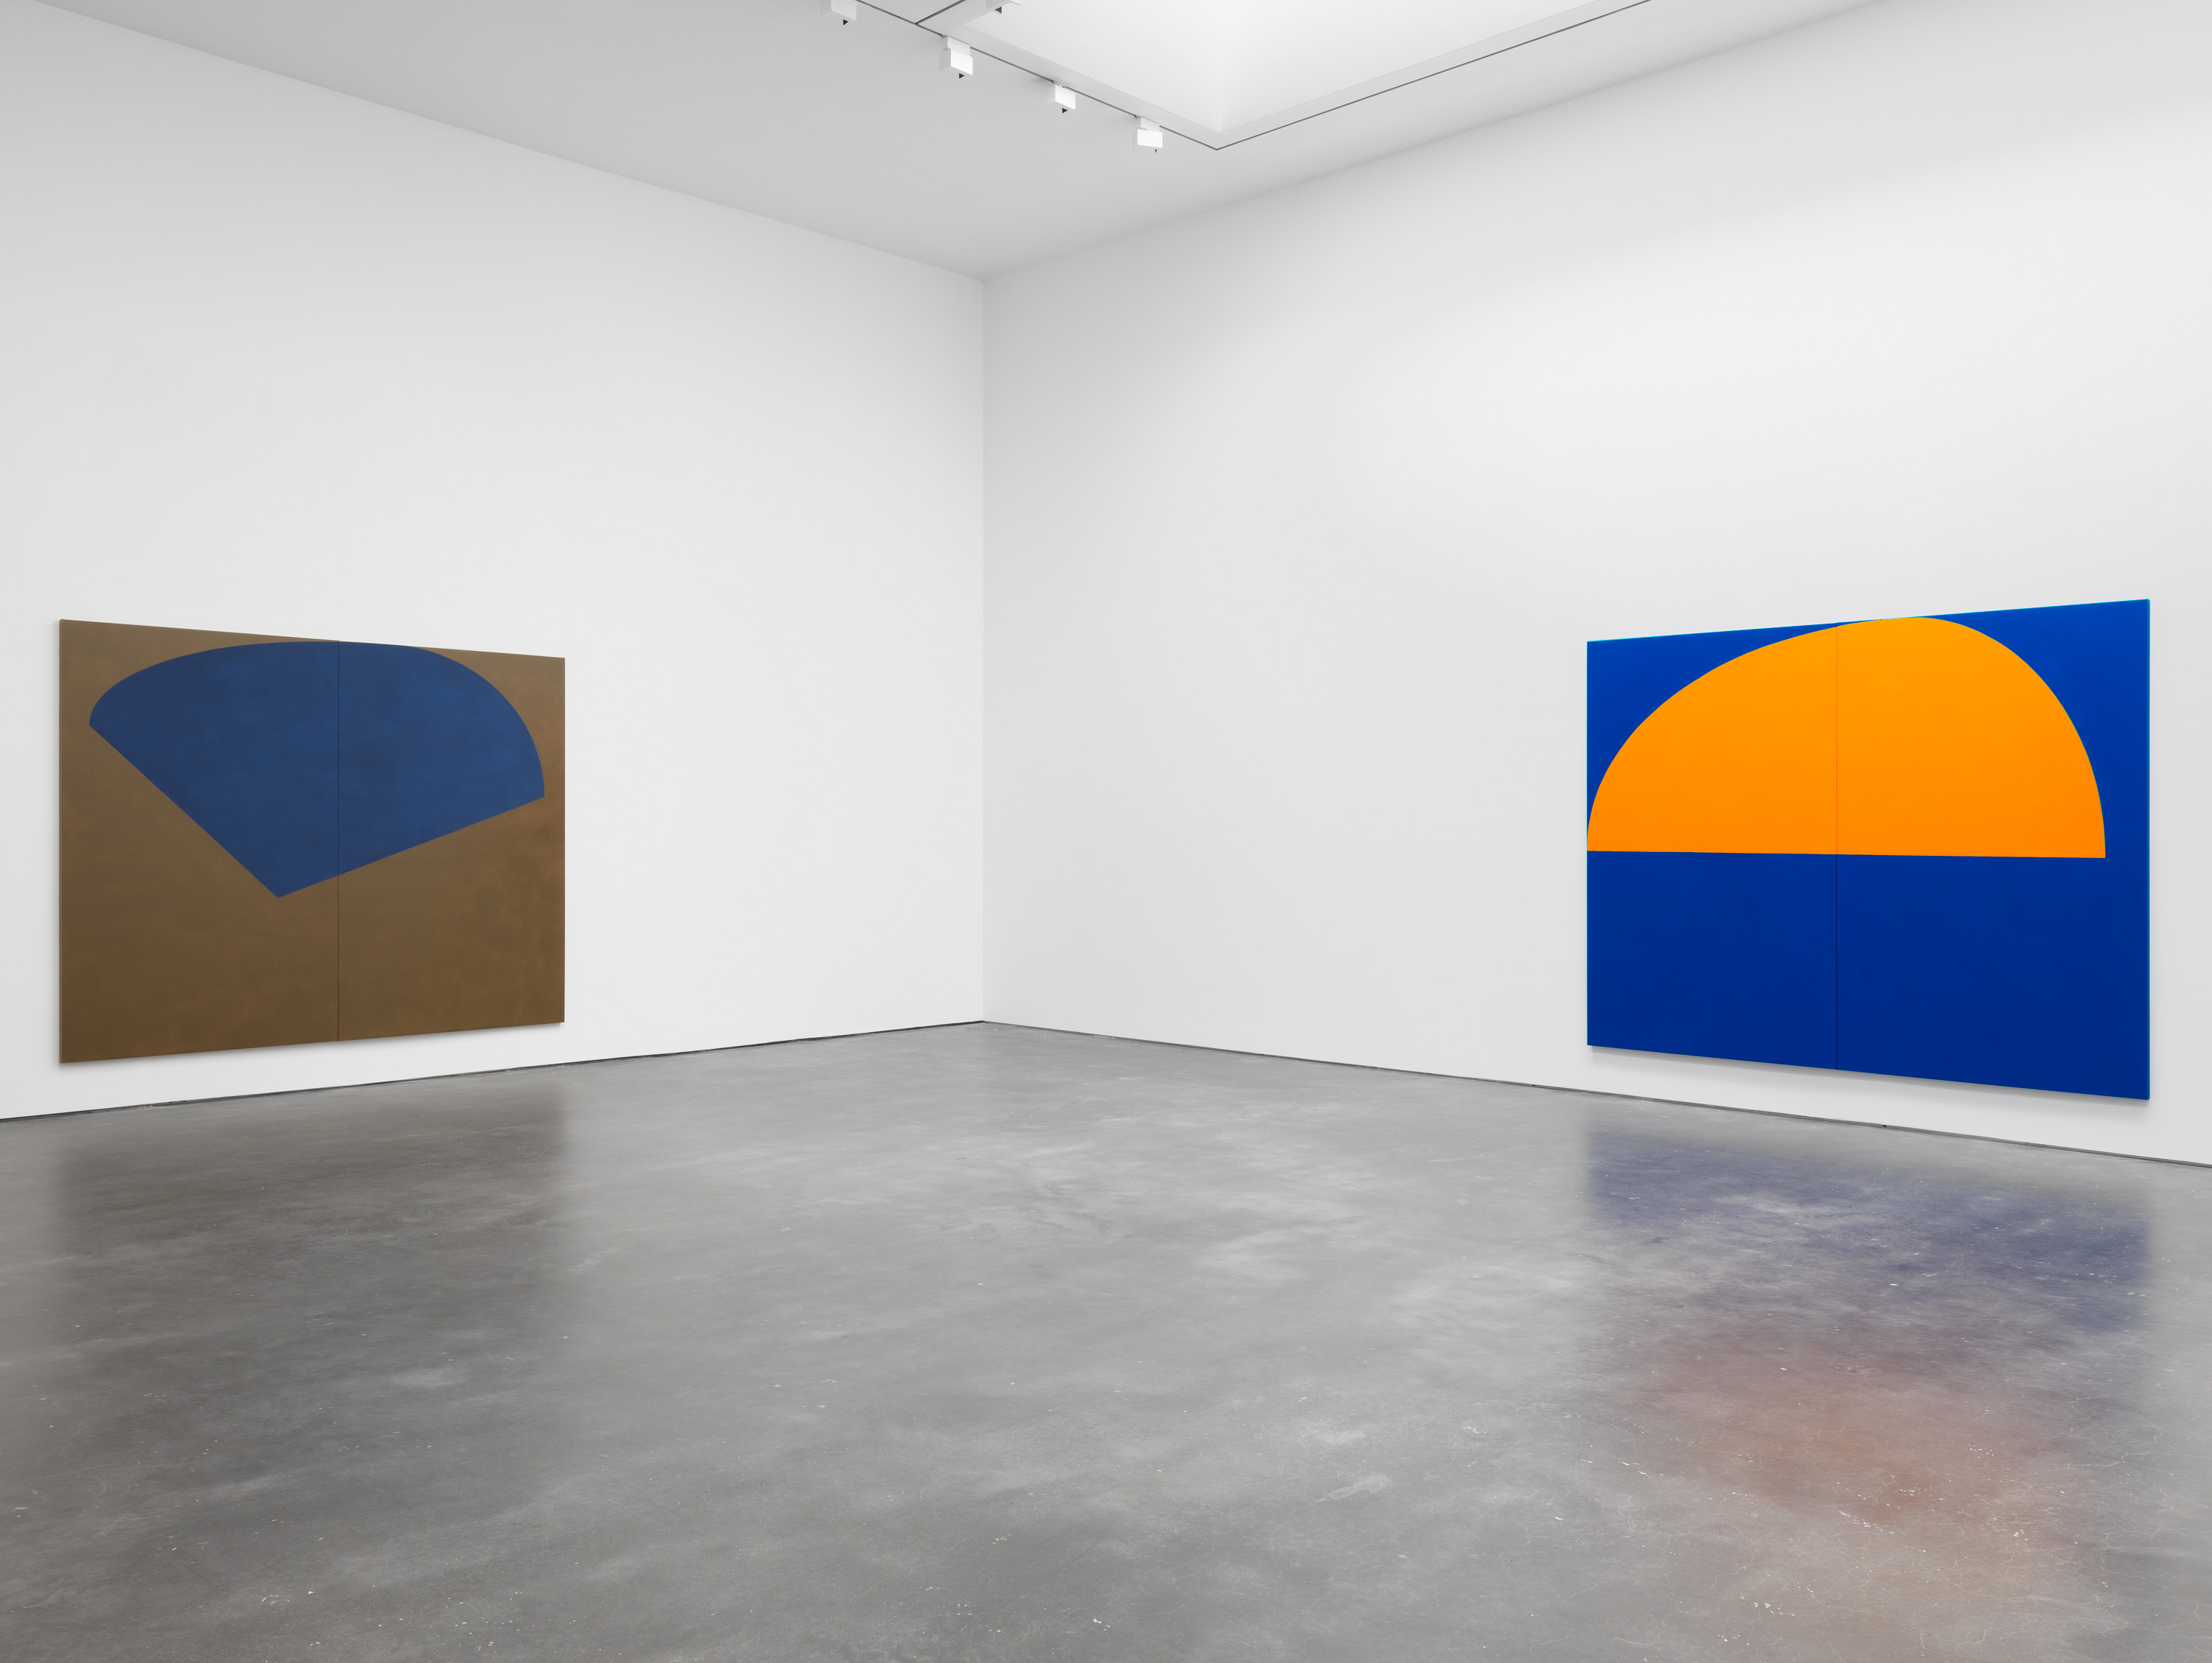 Installation view 3, Suzan Frecon: oil paintings, David Zwirner, New York, 2020 Courtesy David Zwirner